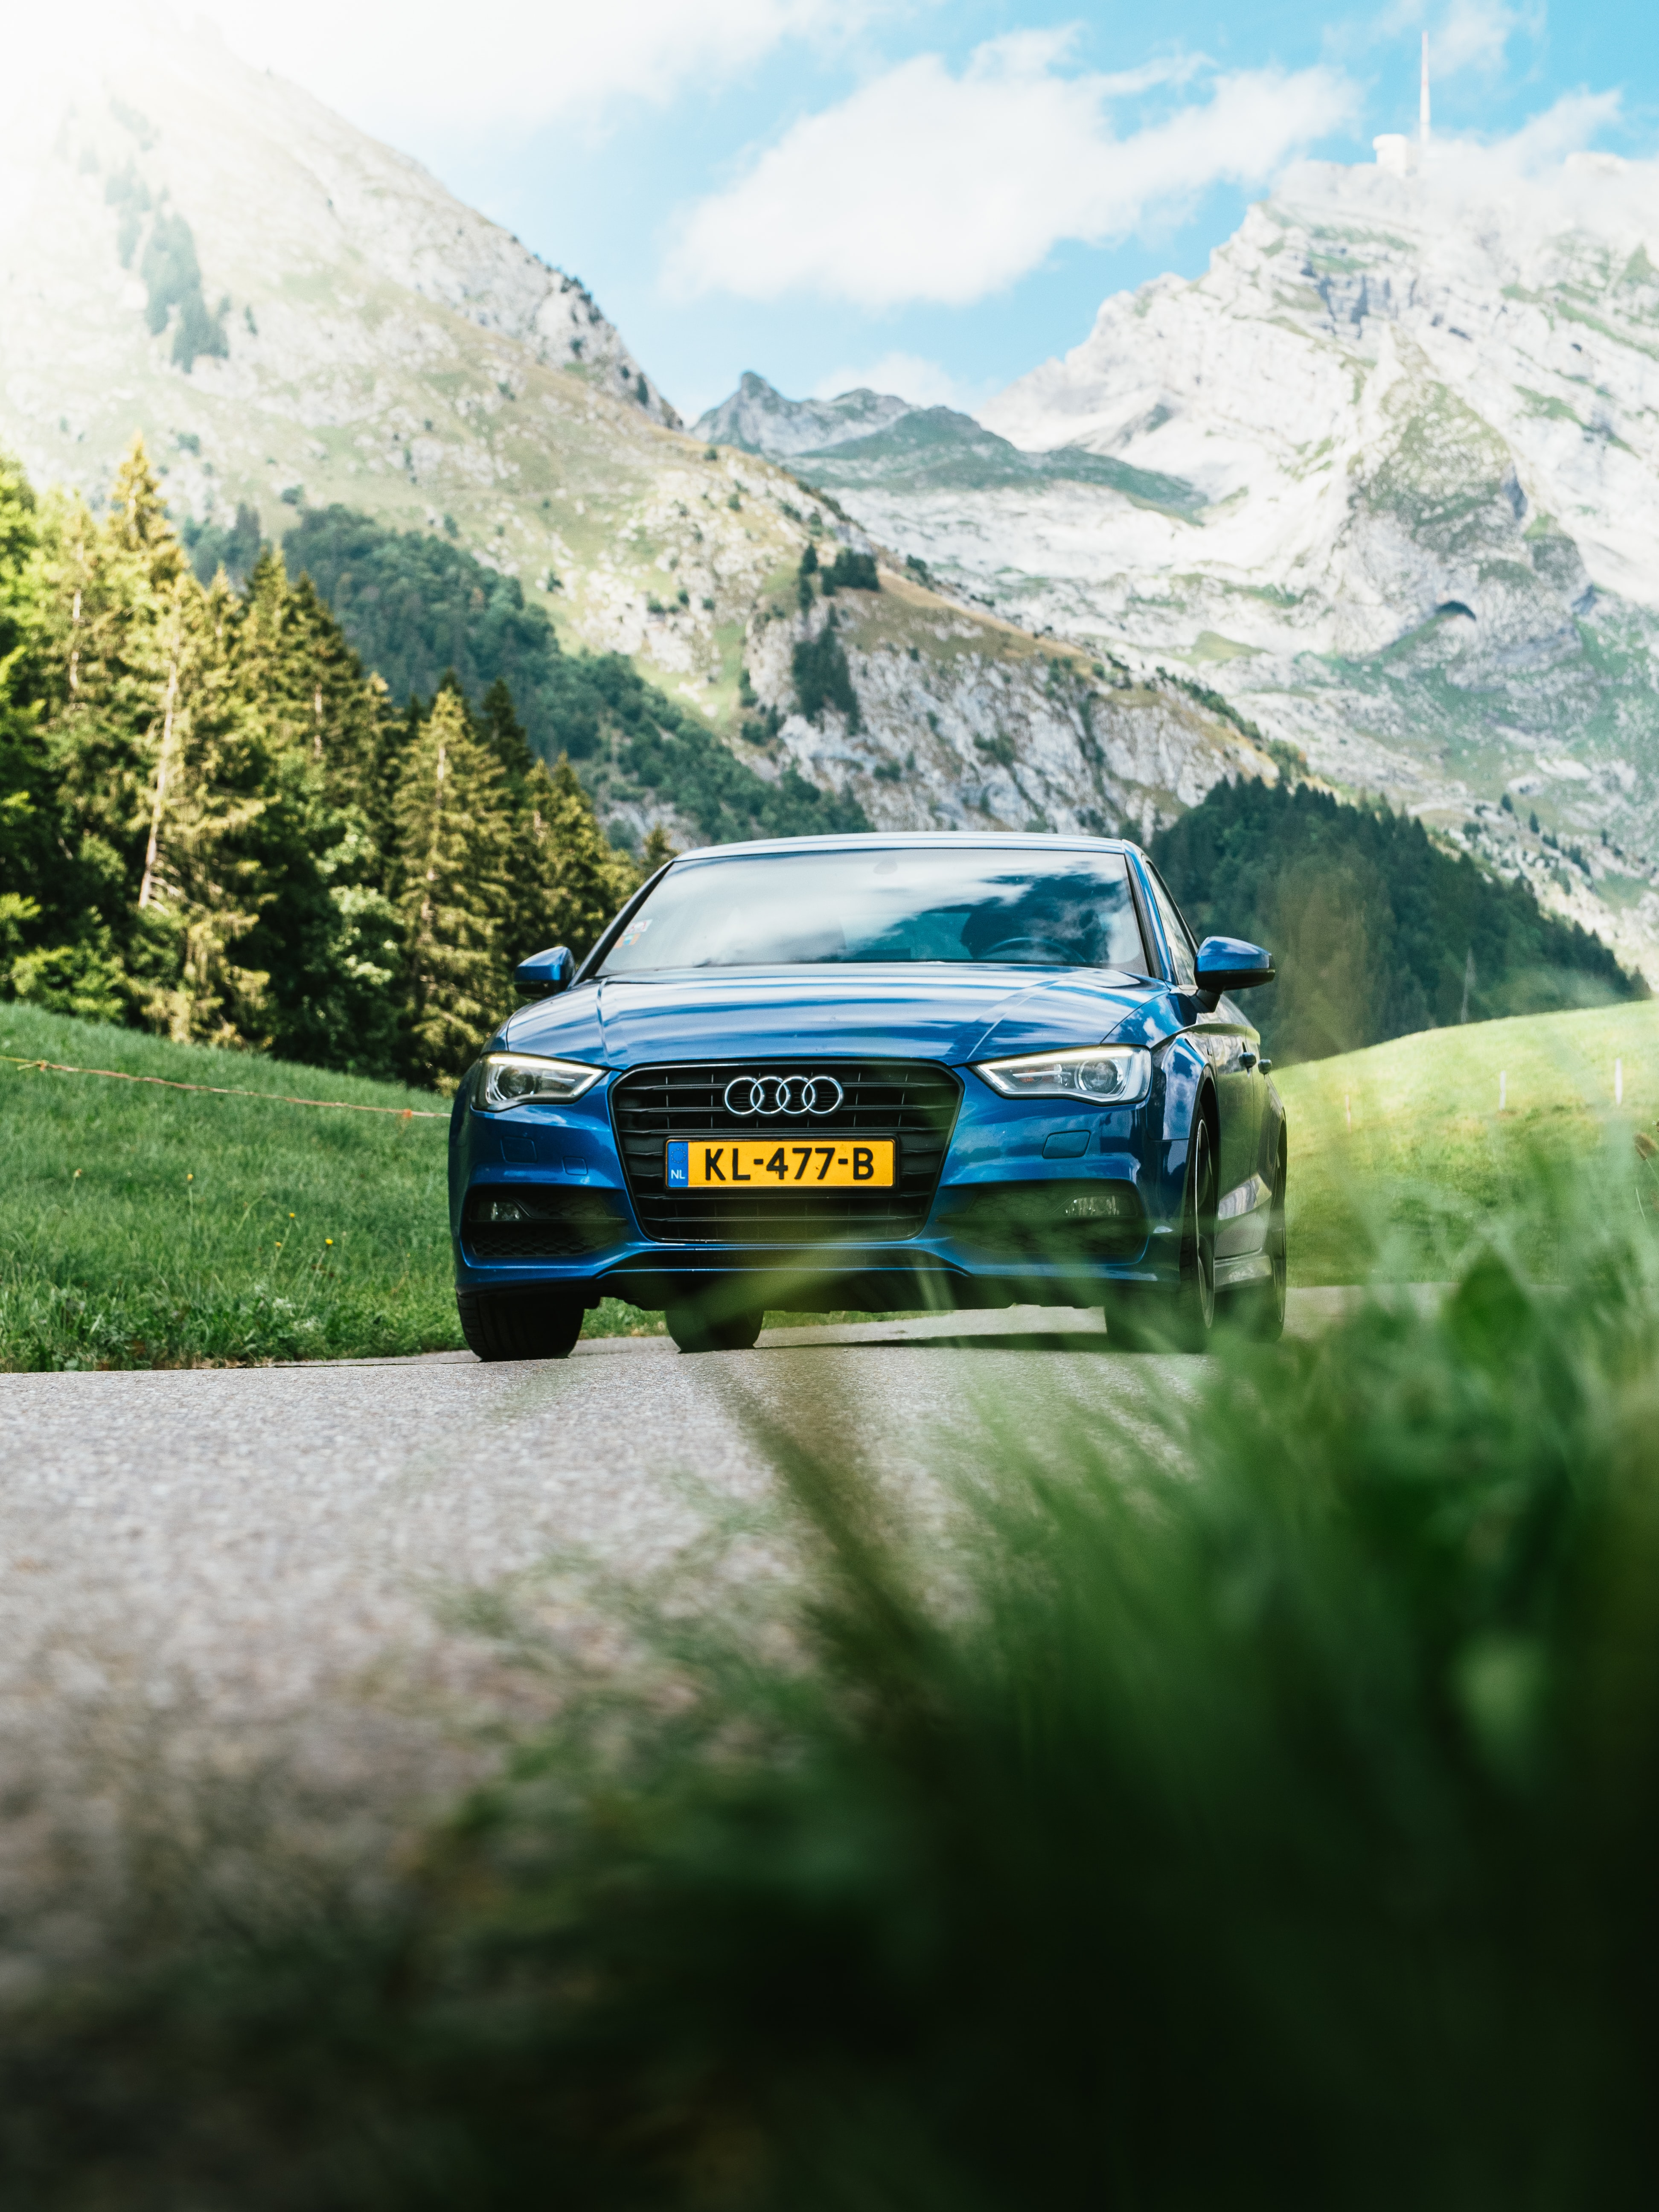 blue Audi vehicle traveling on road